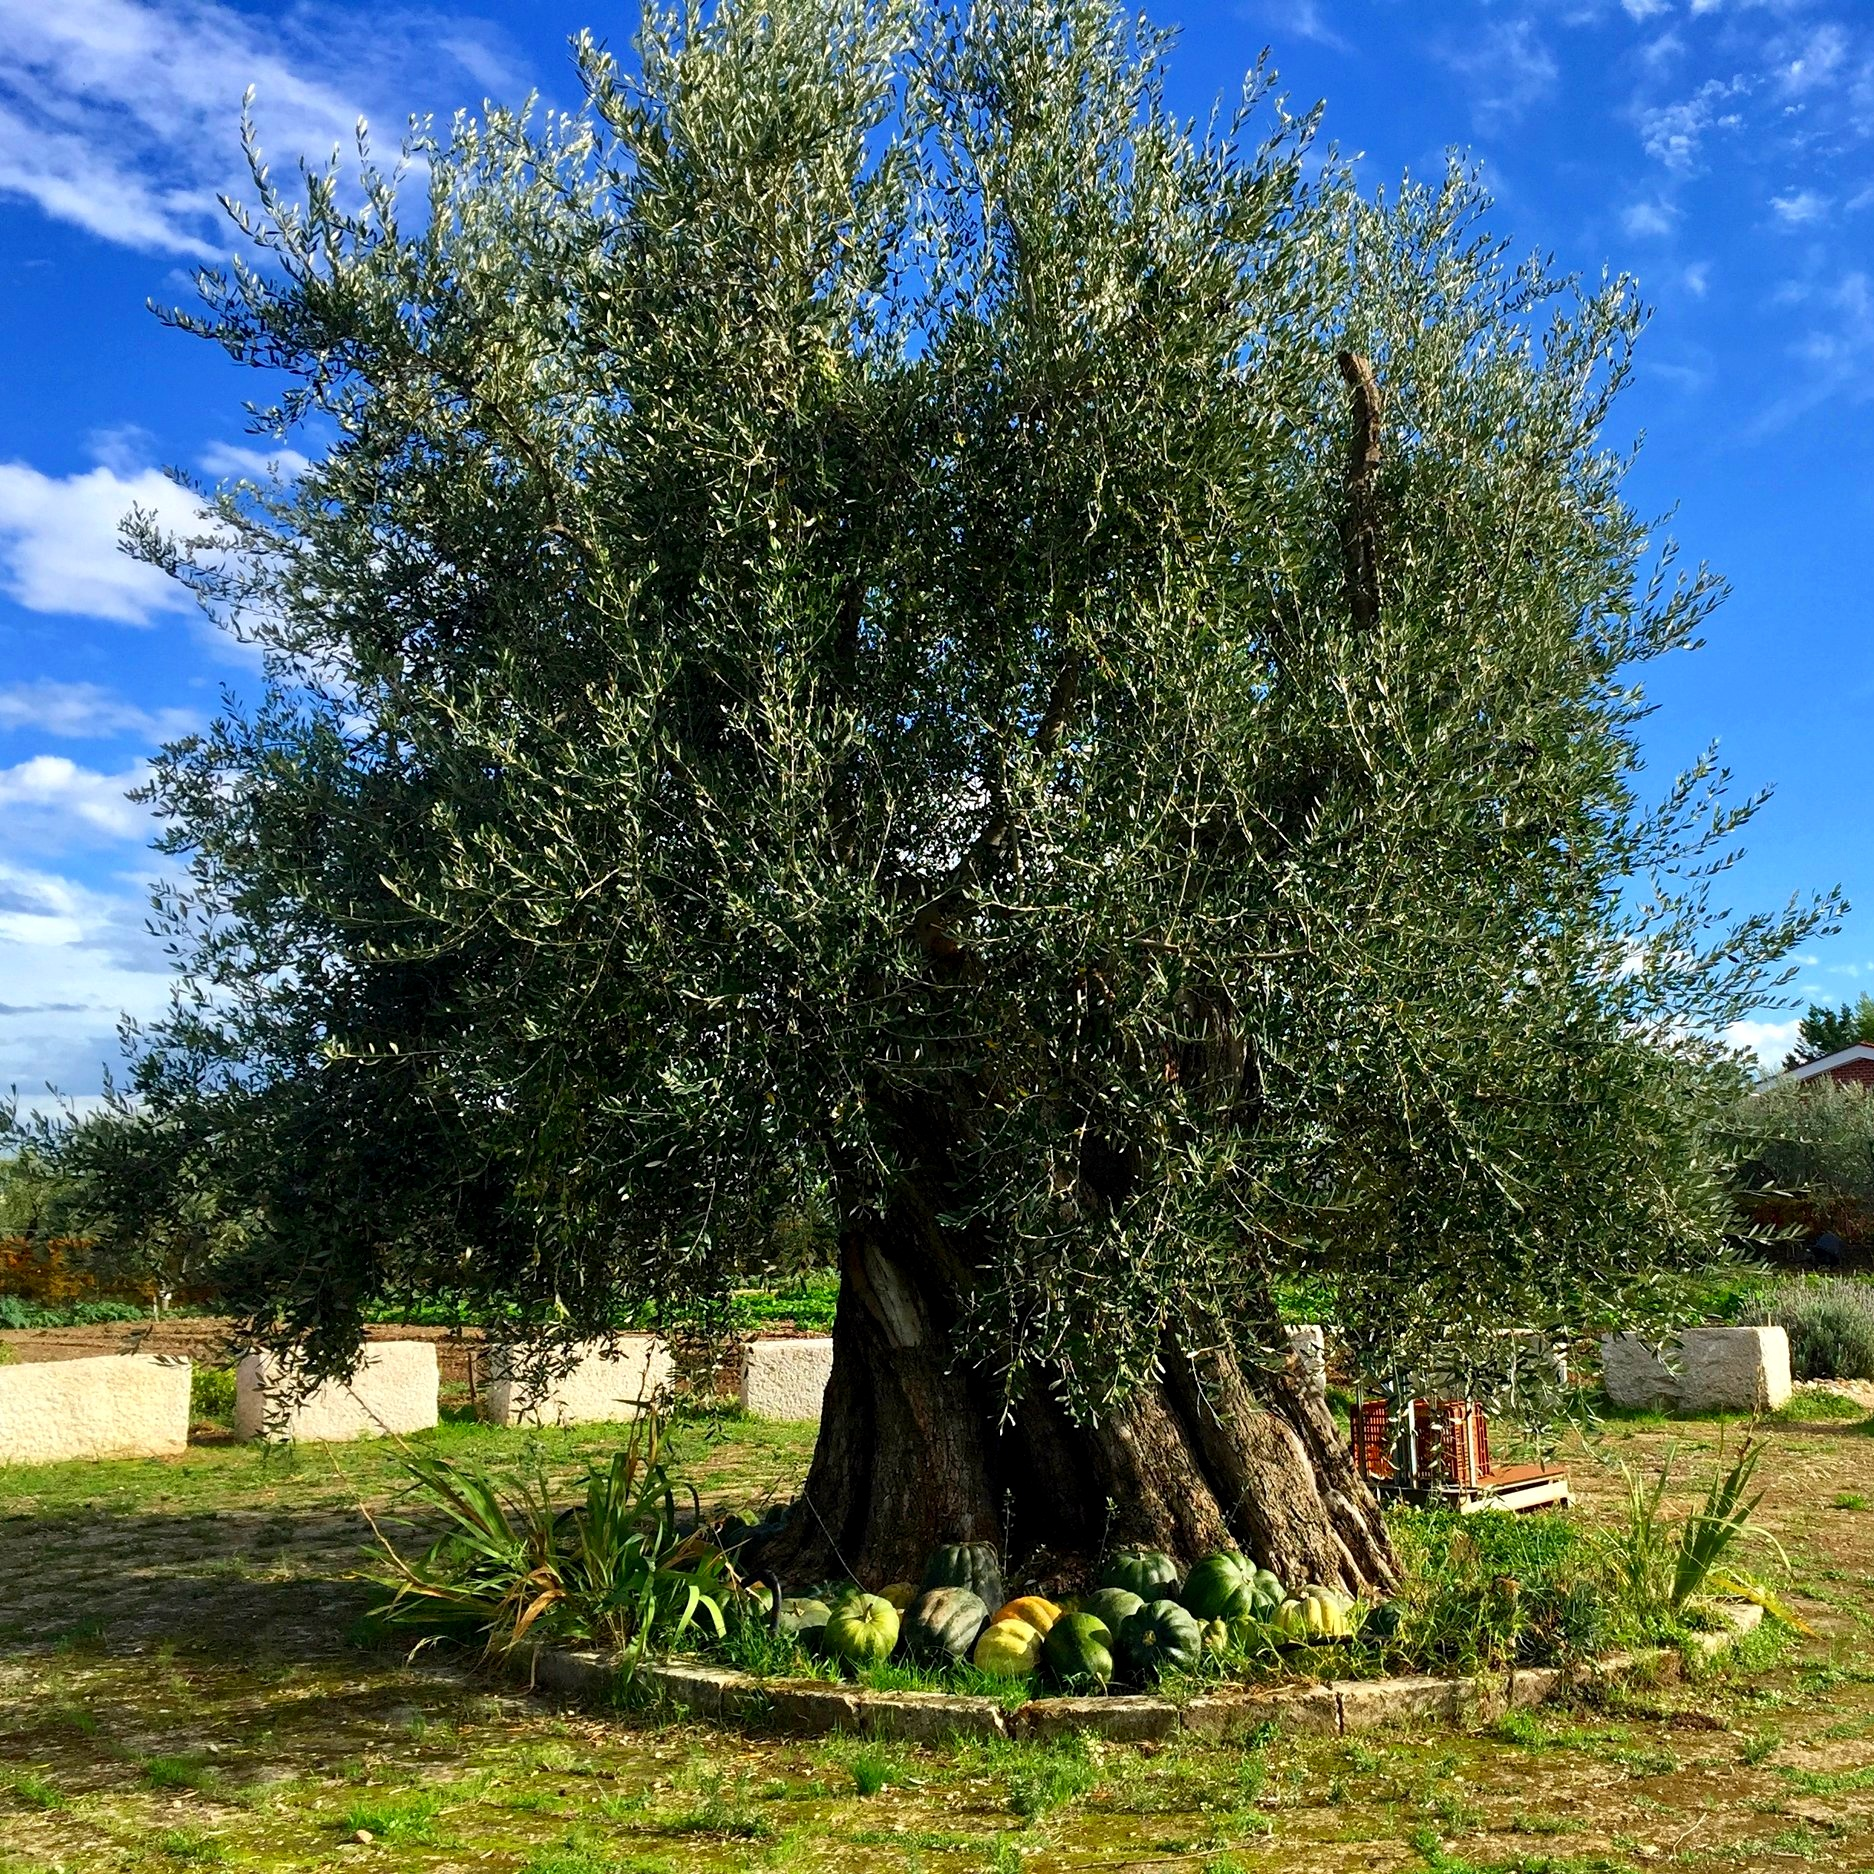 Millennial olive trees and gardens - Montegrosso